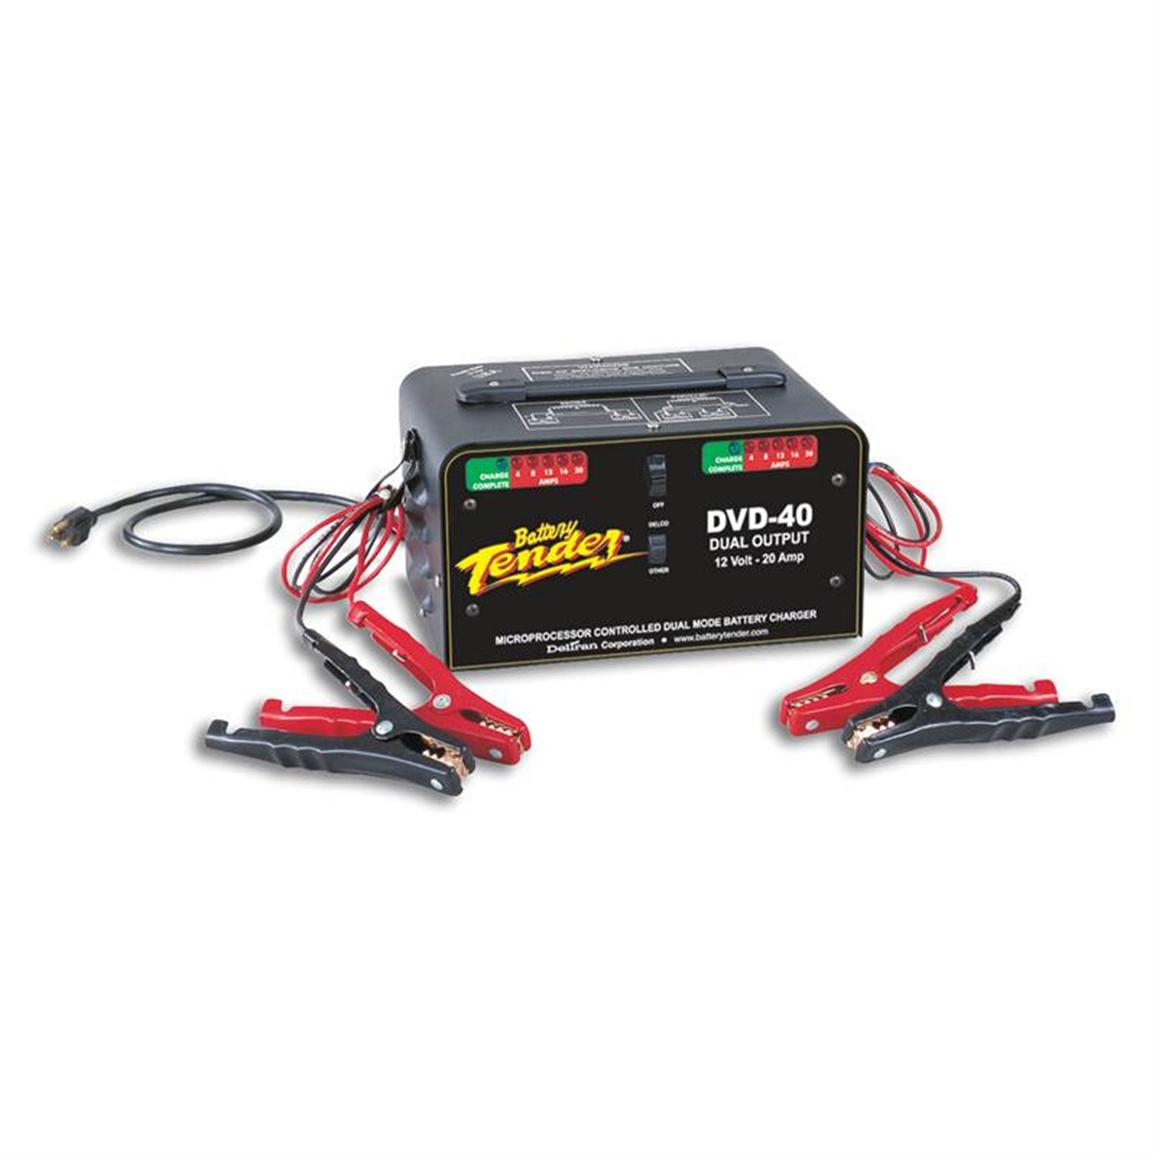 Battery Tender® DVS-40 Heavy-Duty Fast Chargers, Dual Standard & Delco